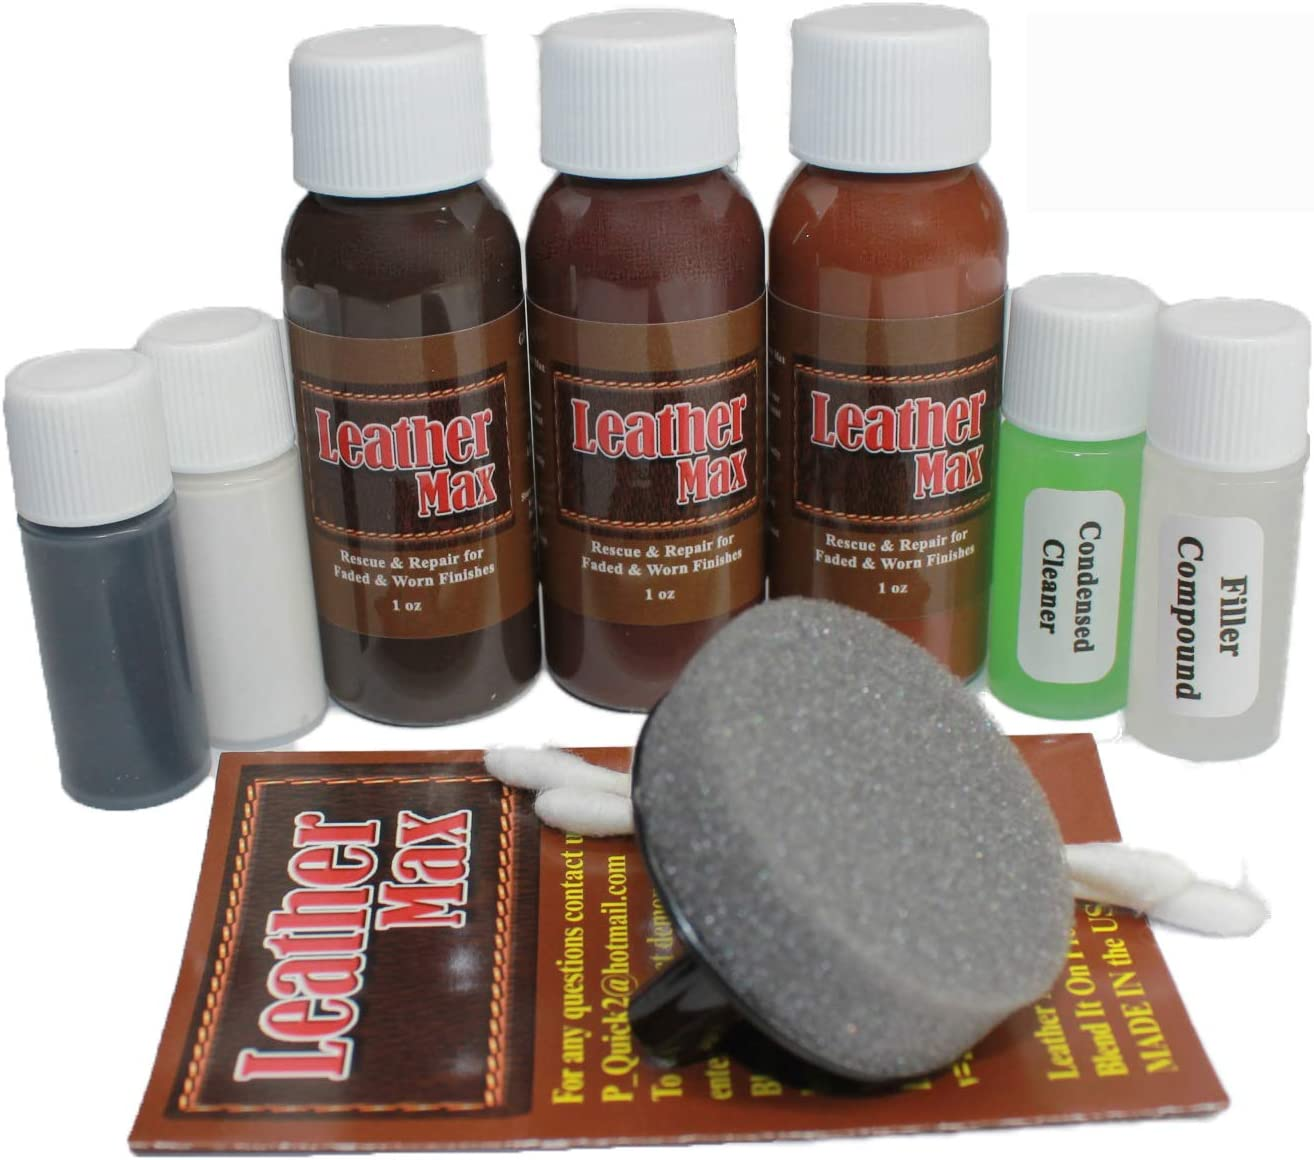 Leather Max Complete Leather Refinish, Restore, Recolor & Repair Kit/Now with 3 Color Shades to Blend with/Leather & Vinyl Refinish (Bold Brown)